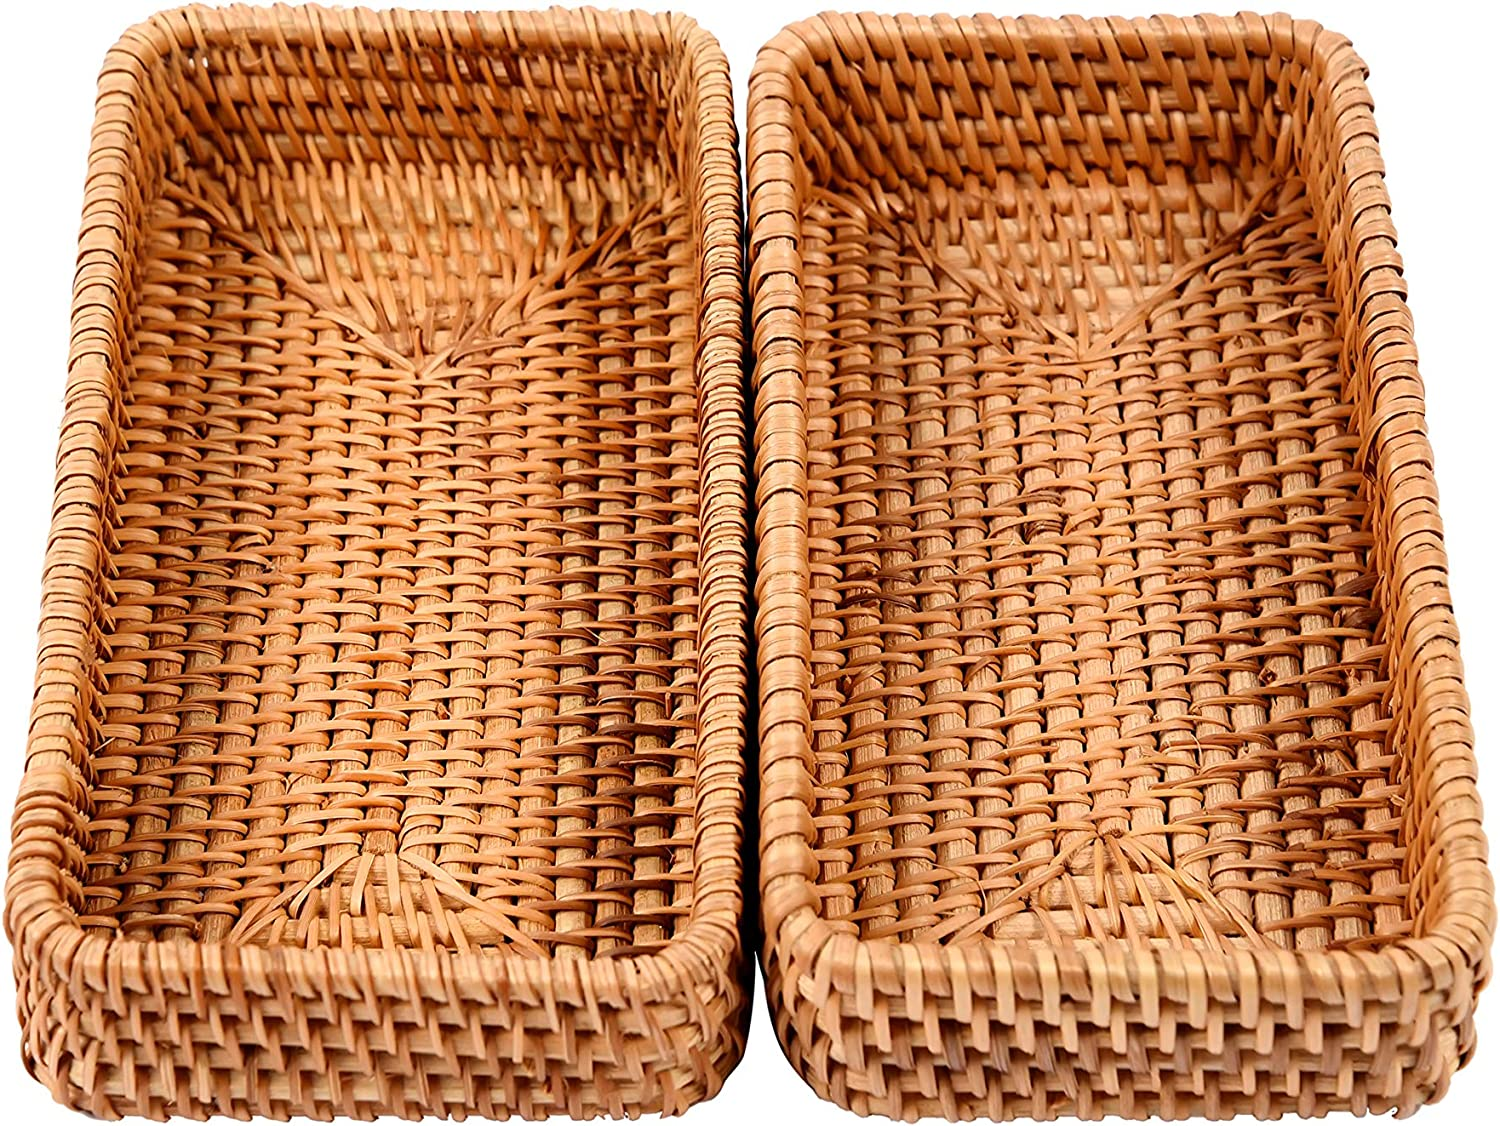 Chinoxinh Set of 2 Handmade Rectangle Rattan Serving Trays - Wicker Tabletop Fruit Platter - Woven Office Supplies & Kitchen Widget Organizer - Handcrafted Tissue, Bathroom Accessory Tray - Small size